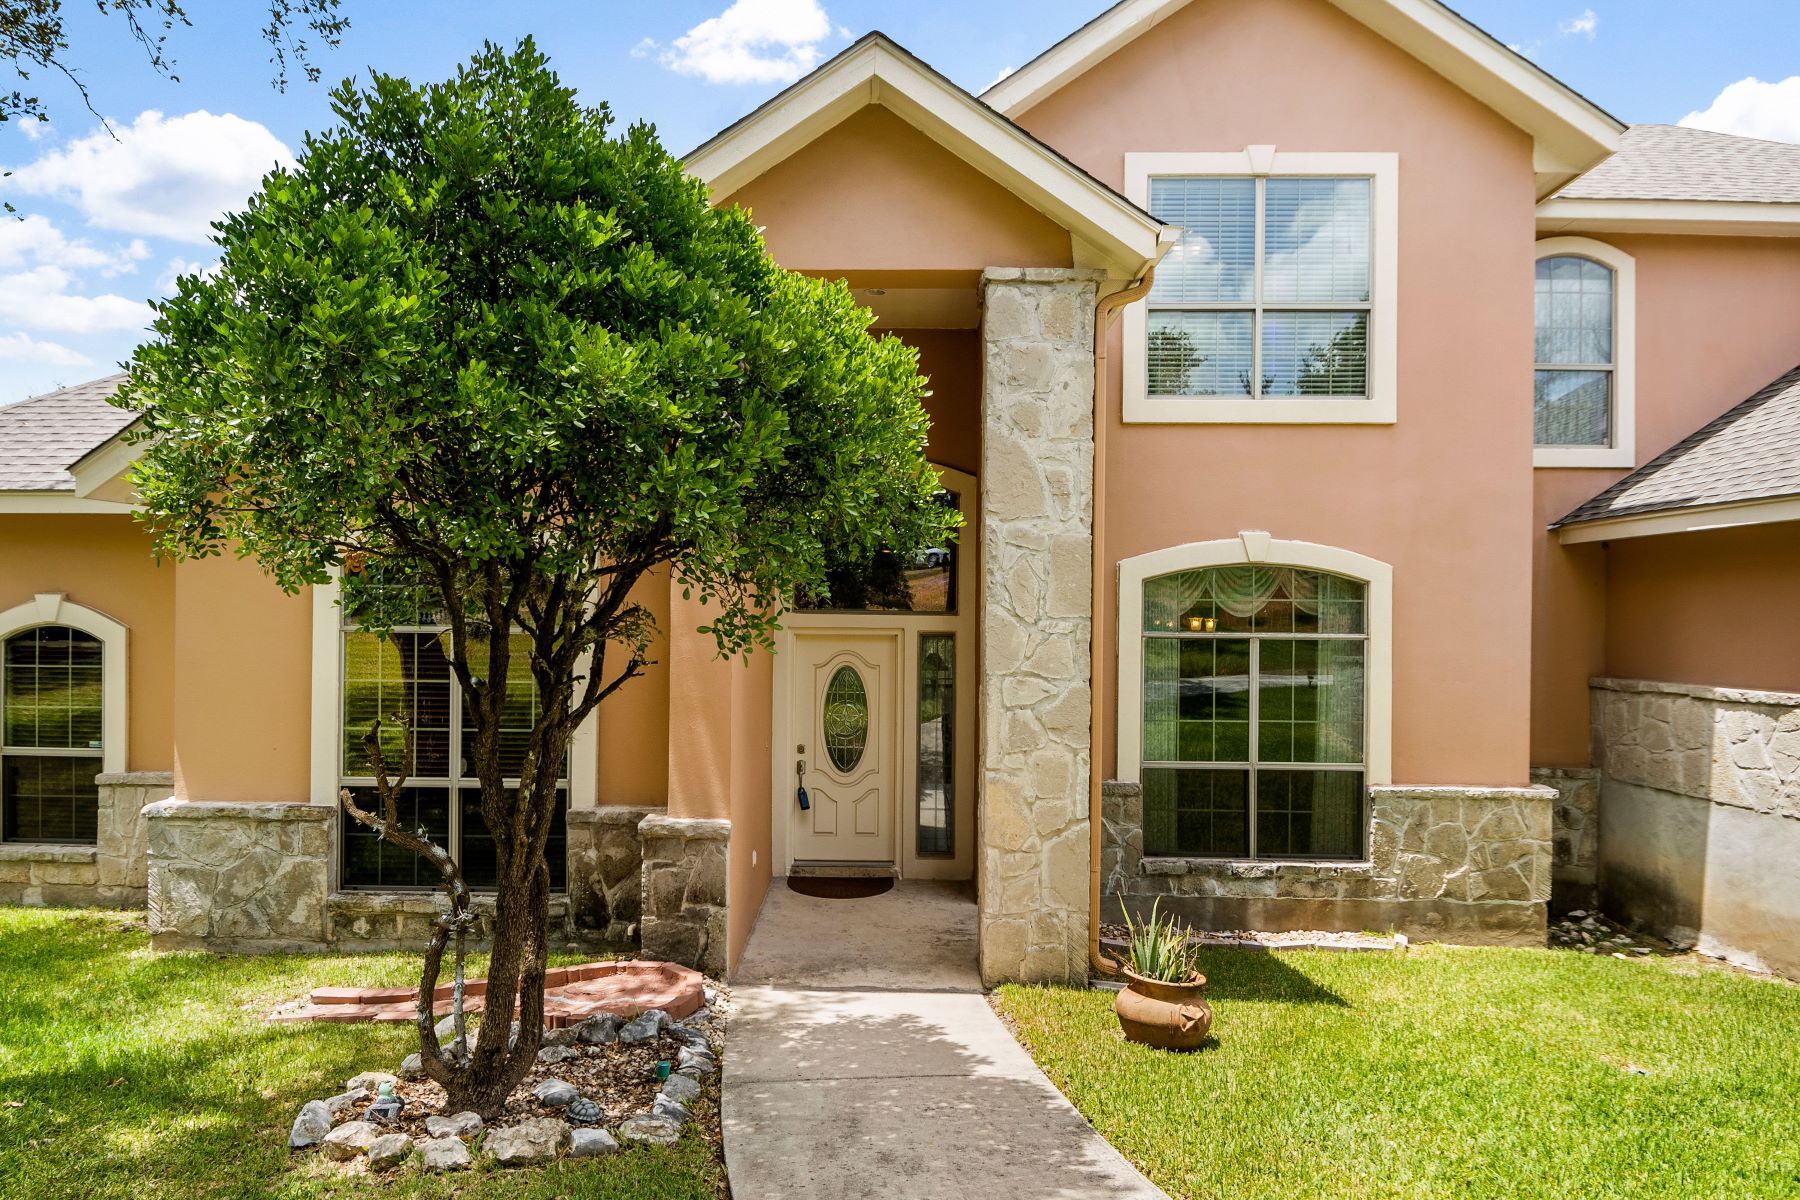 Single Family Homes for Sale at 9819 Cash Mountain Road, Helotes, TX 78023 9819 Cash Mountain Road Helotes, Texas 78023 United States